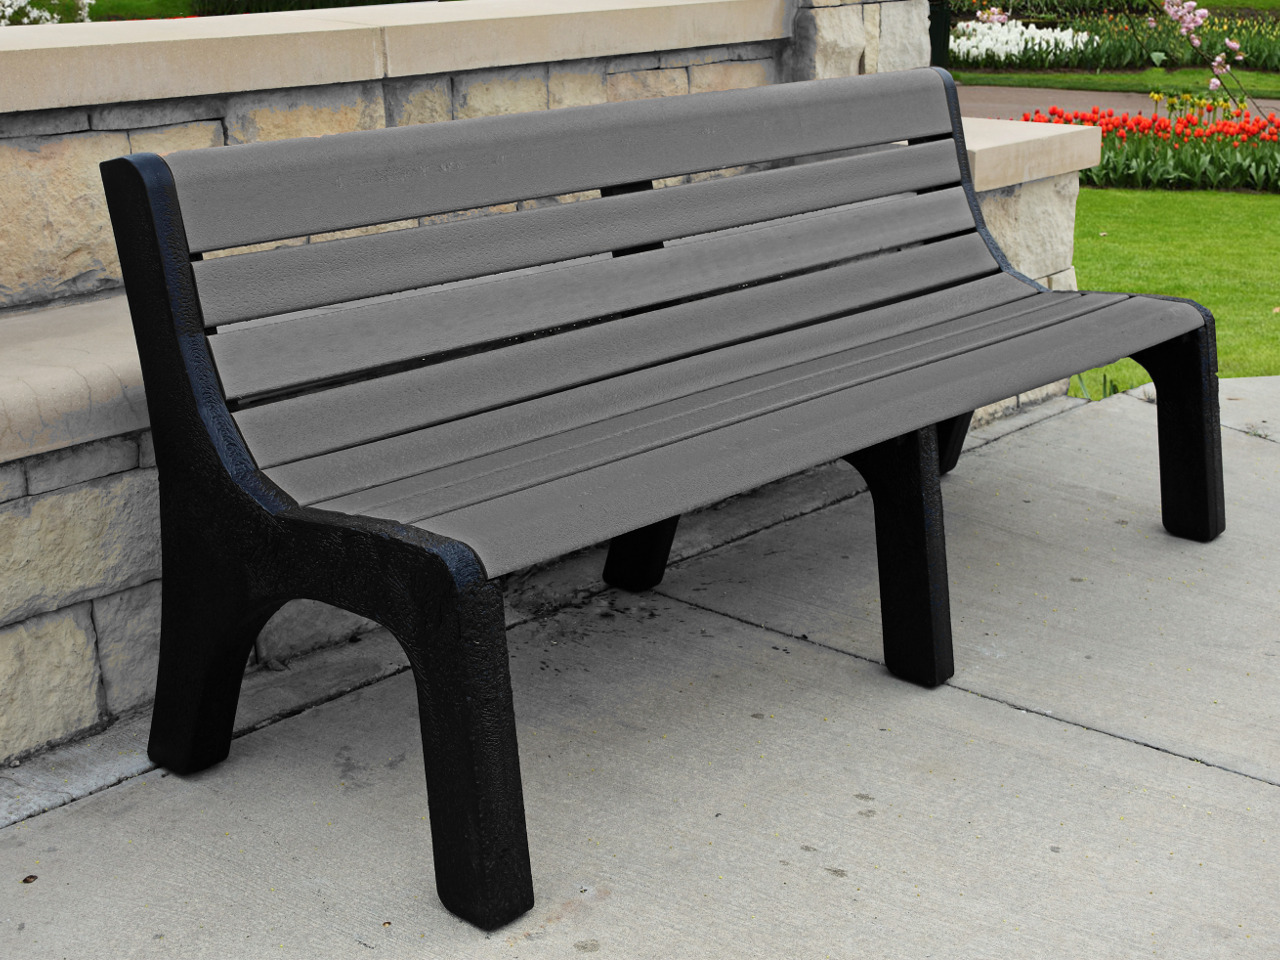 Recycled Plastic Newport Bench By Jayhawk Plastics